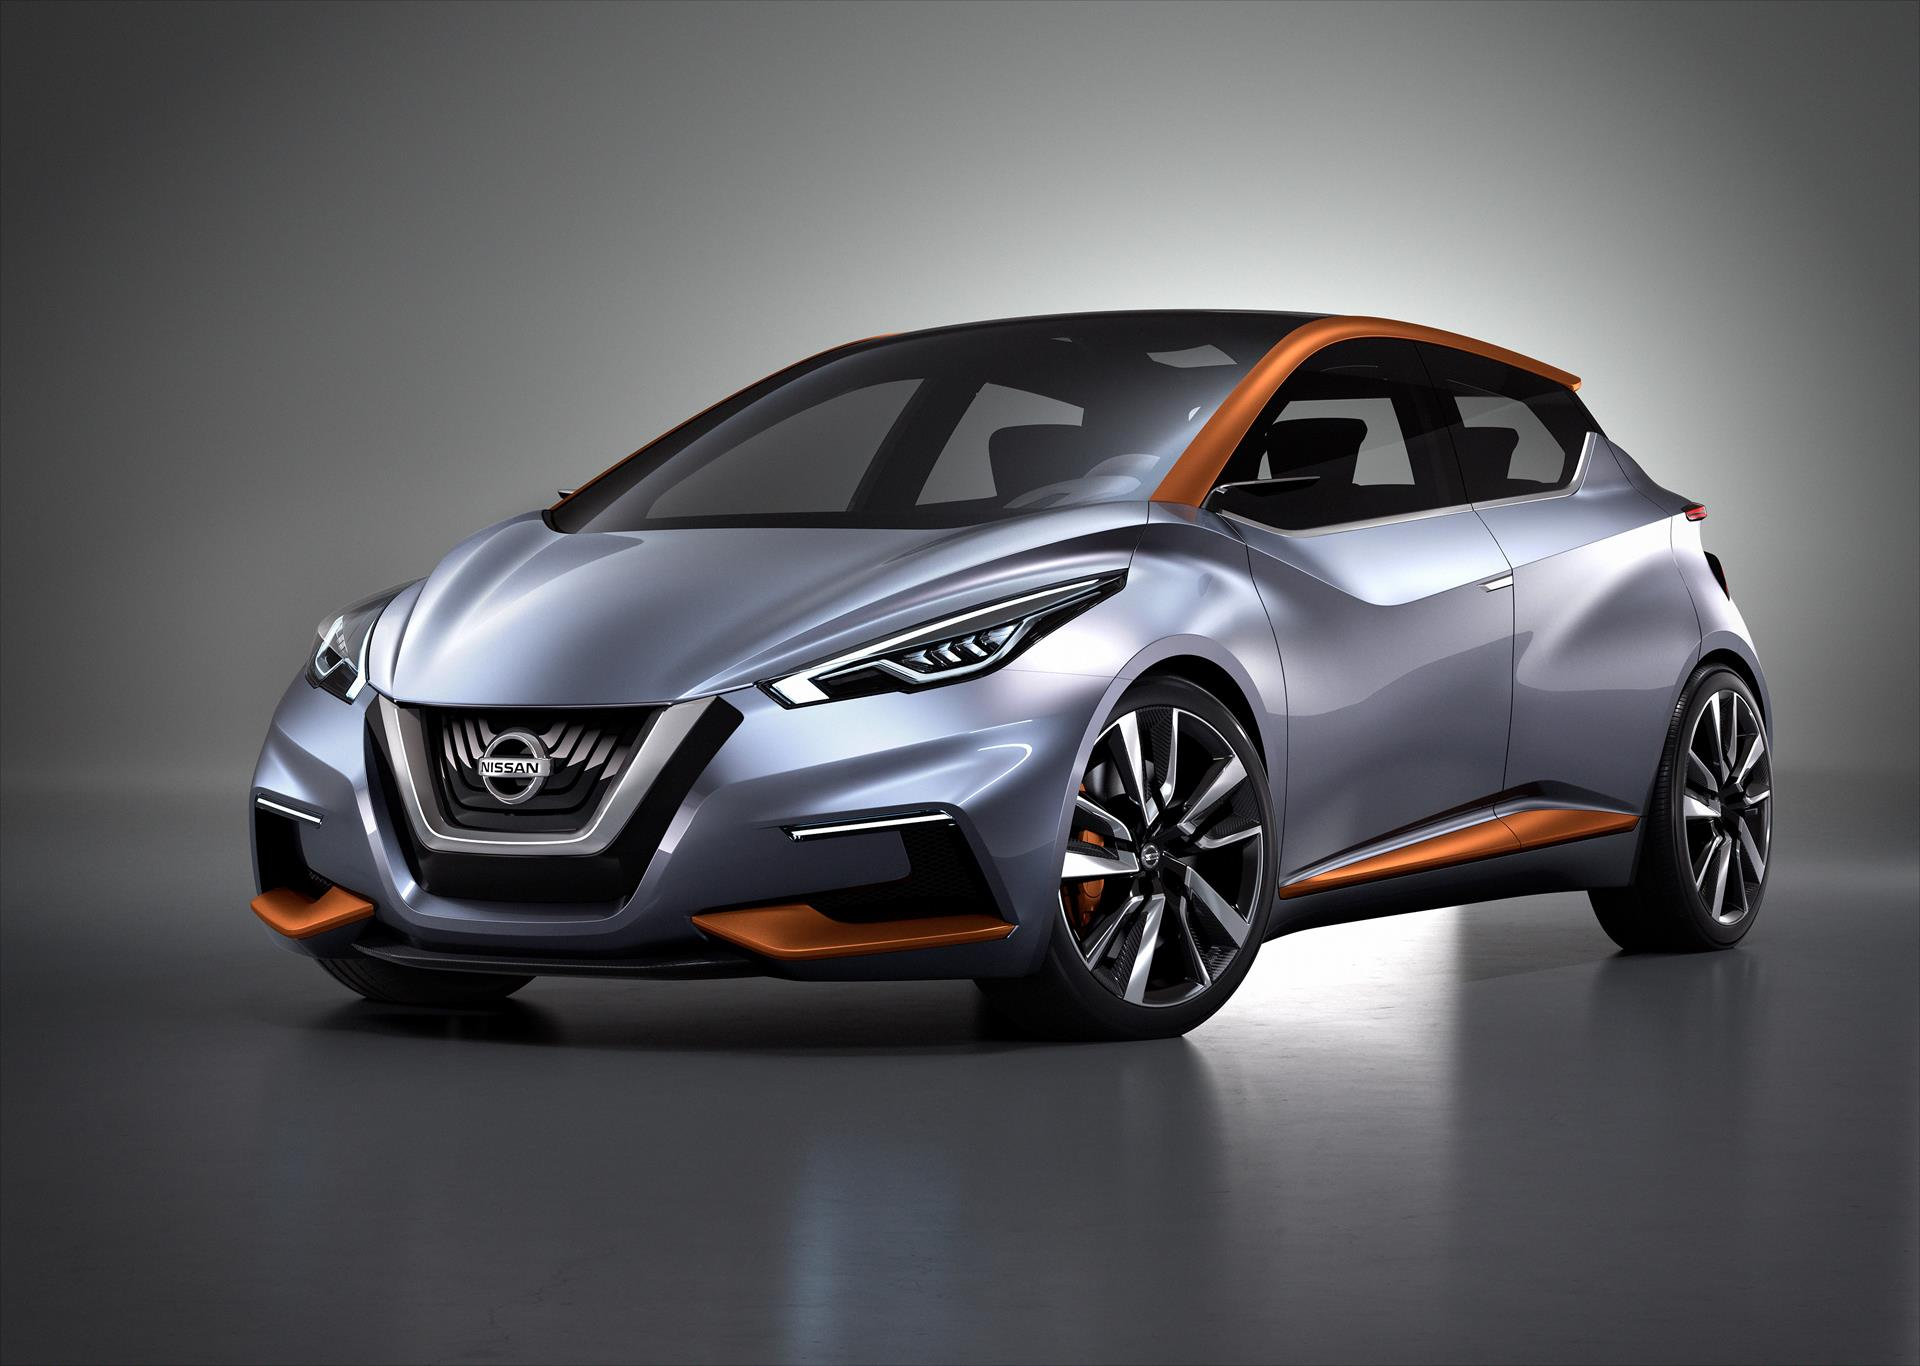 Nissan models images wallpaper pricing and information nissan sway concept vanachro Images